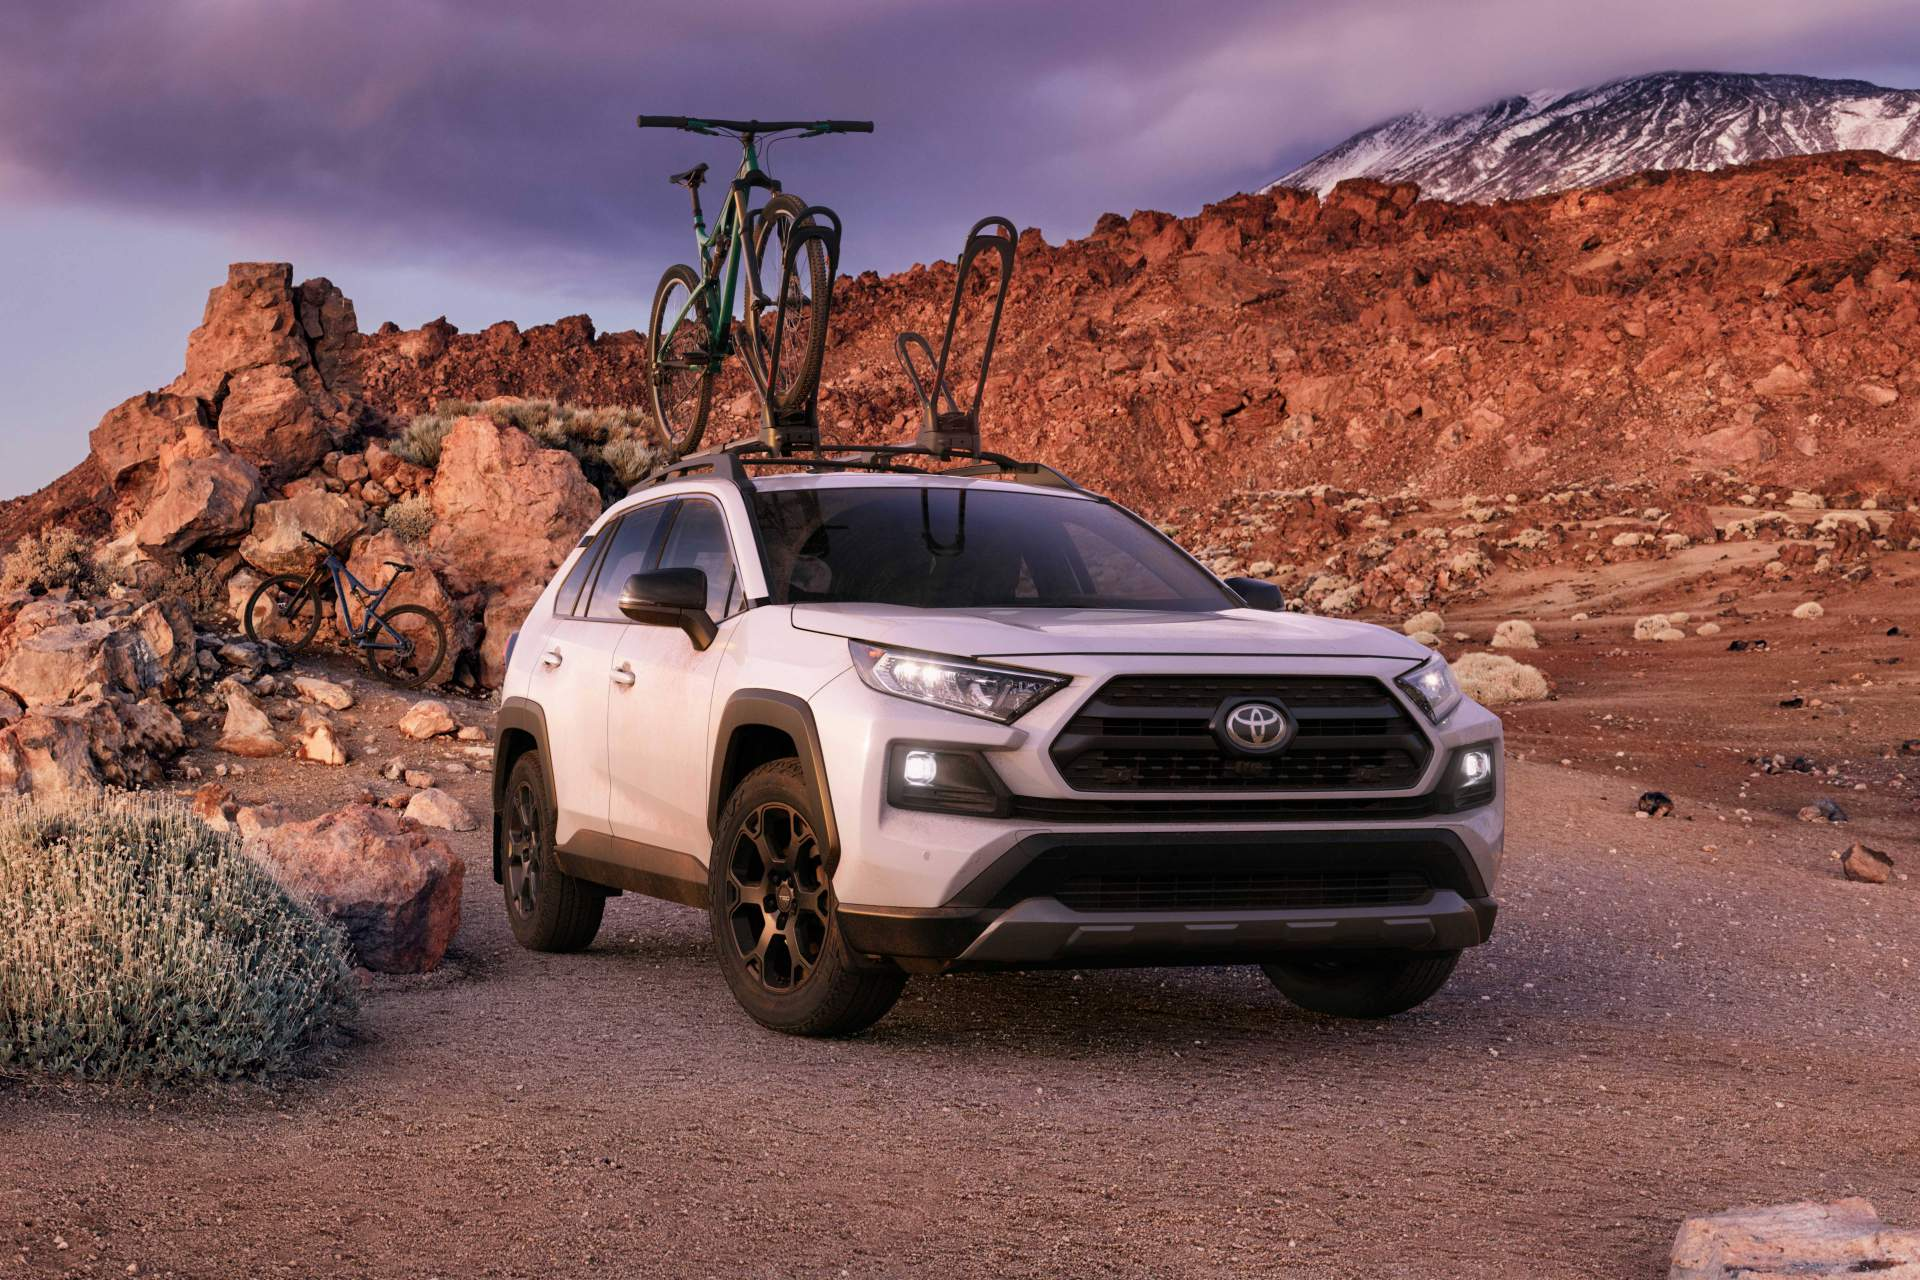 2020 Toyota Rav4 Trd Off Road Revealed As Next Your Jeep Alternative Autoevolution